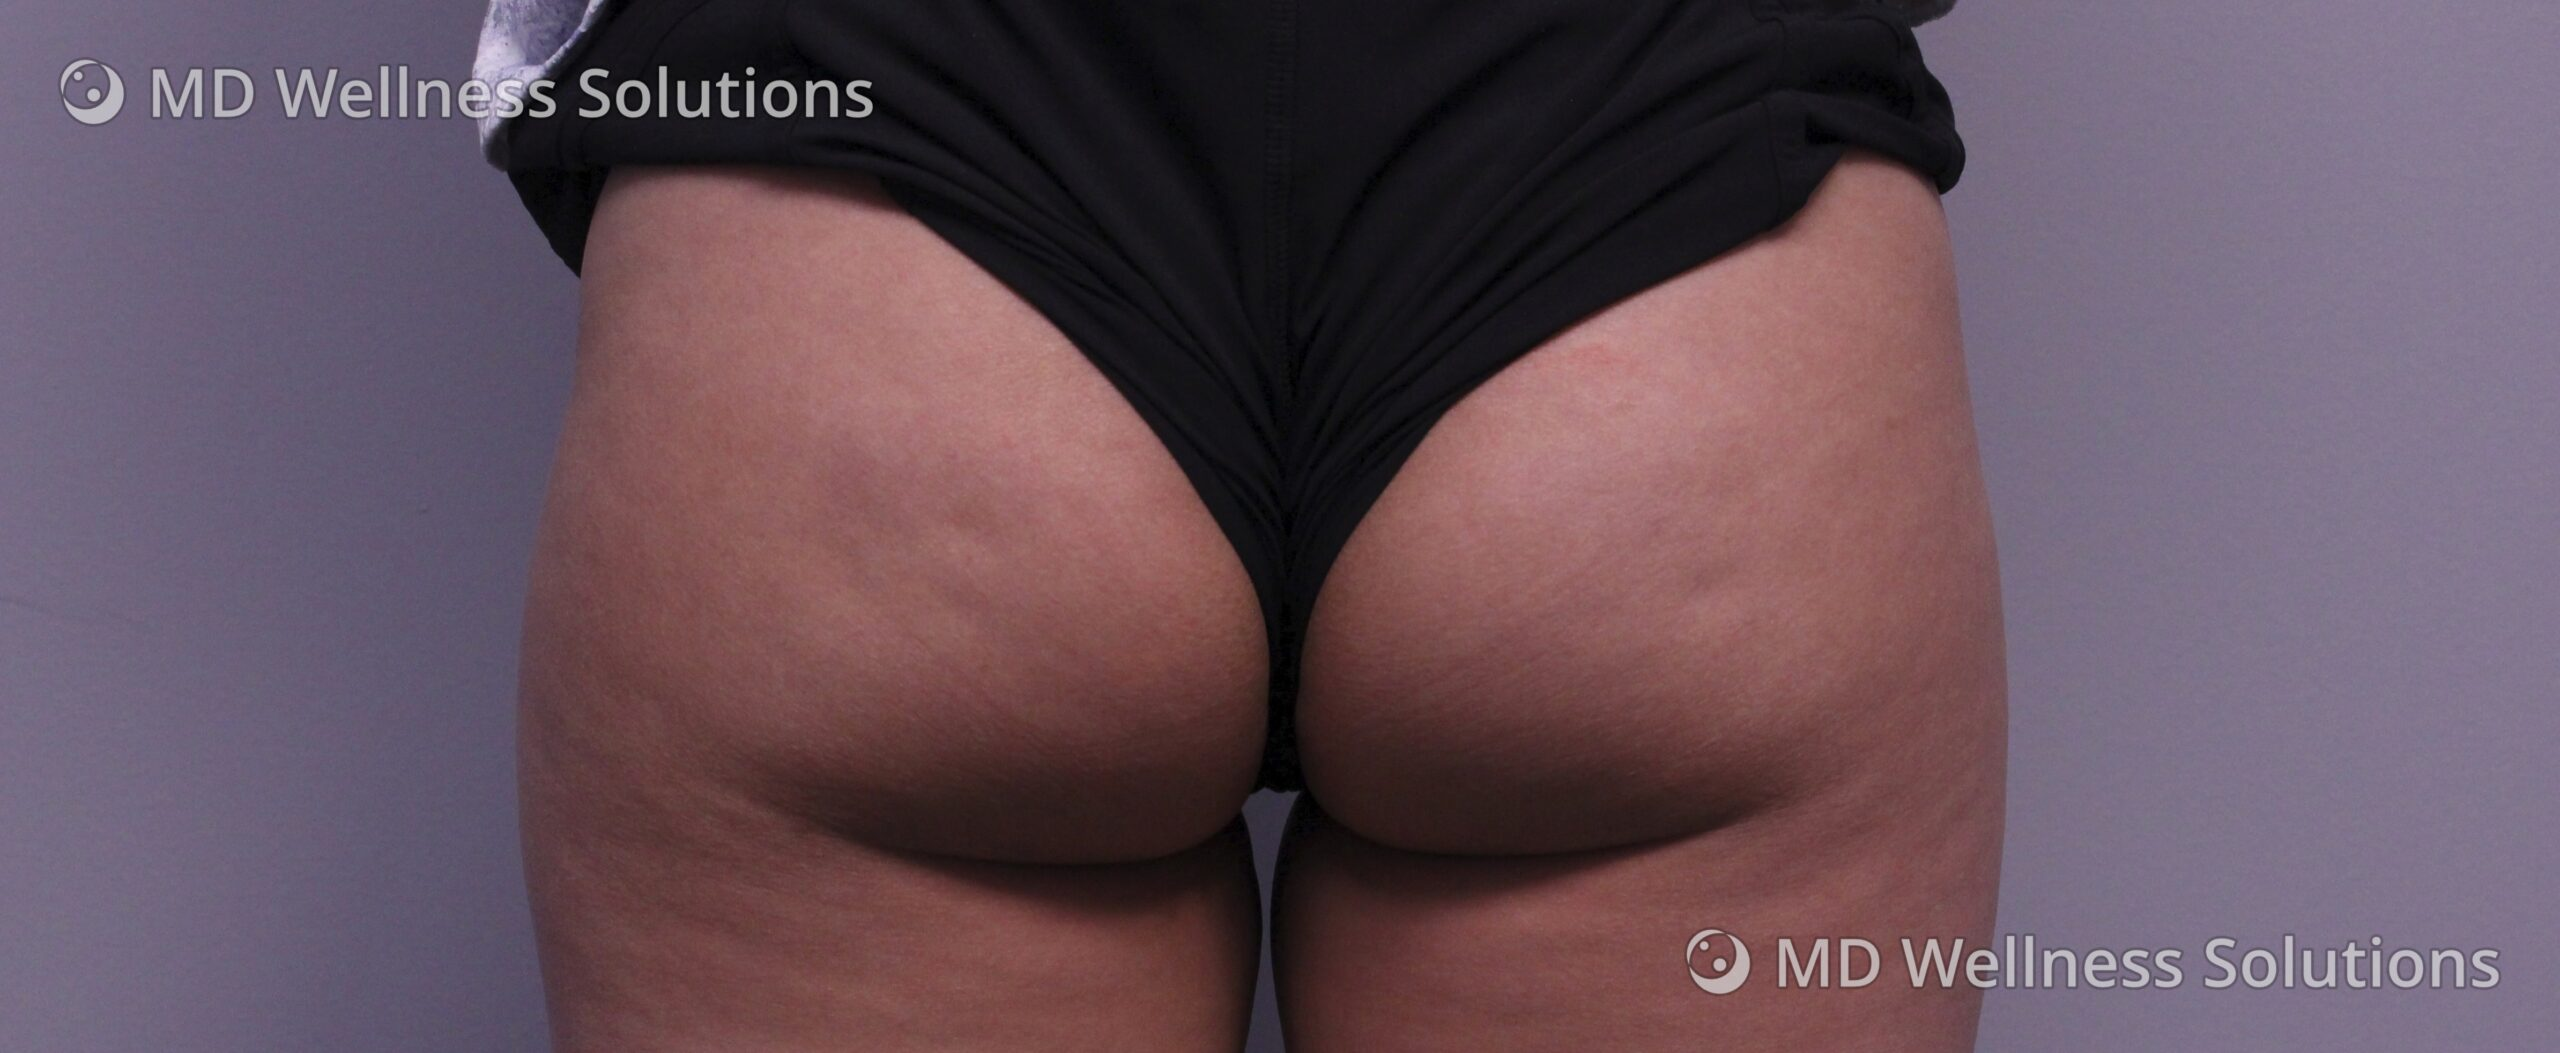 25-34 year old woman before Emsculpt NEO body contouring treatment